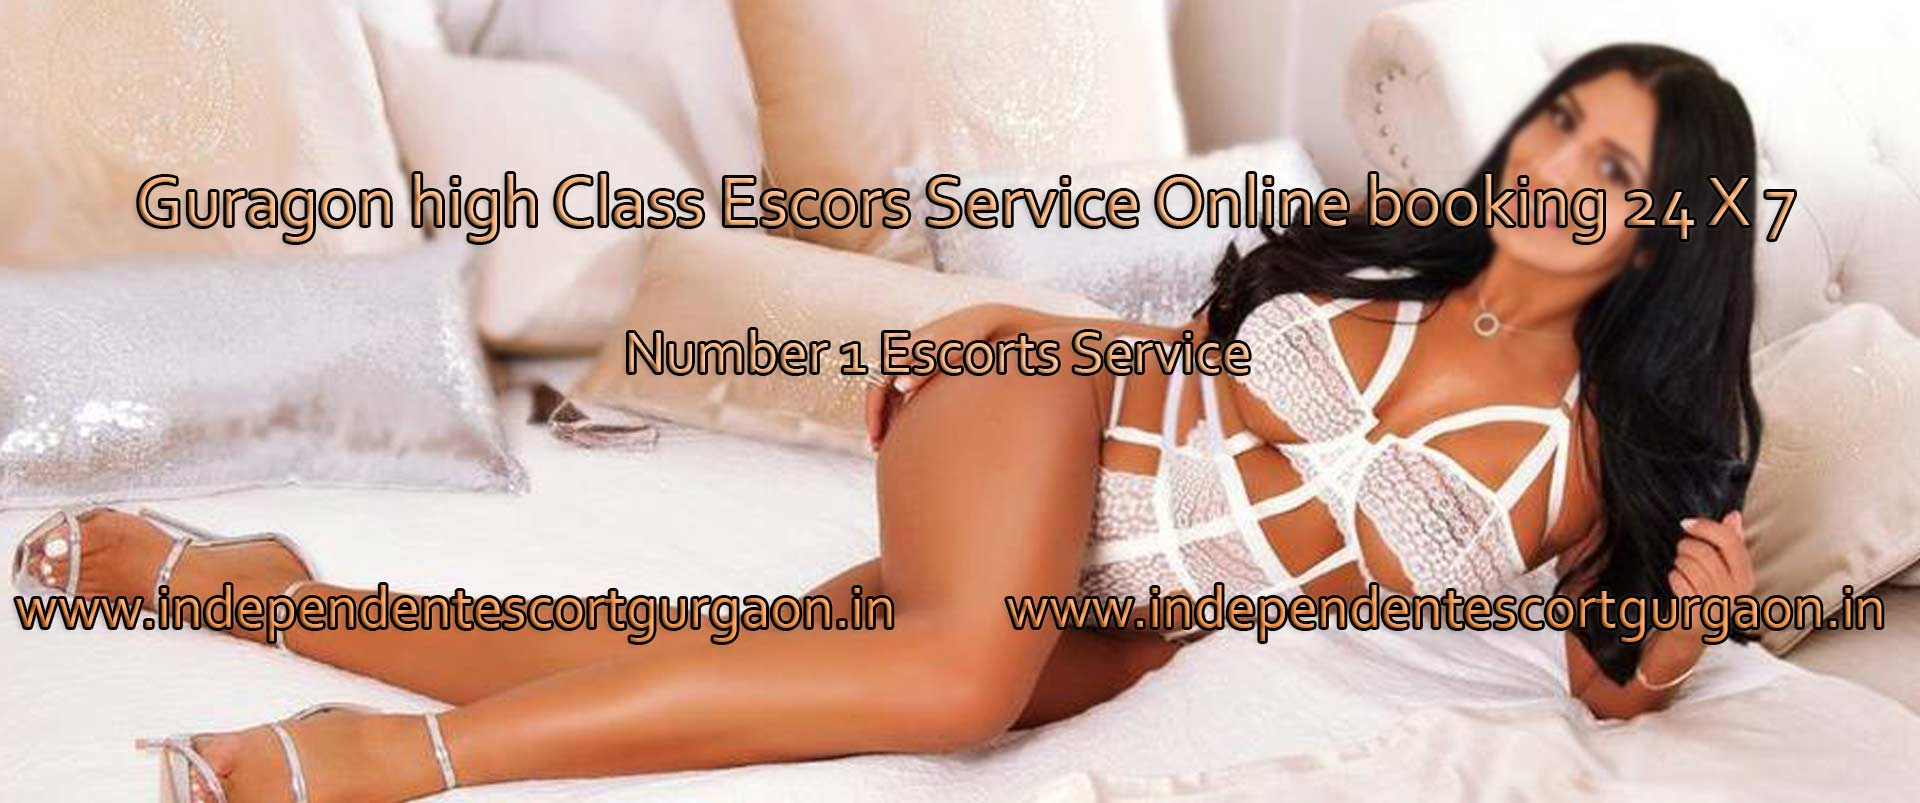 Escort in Gurgaon